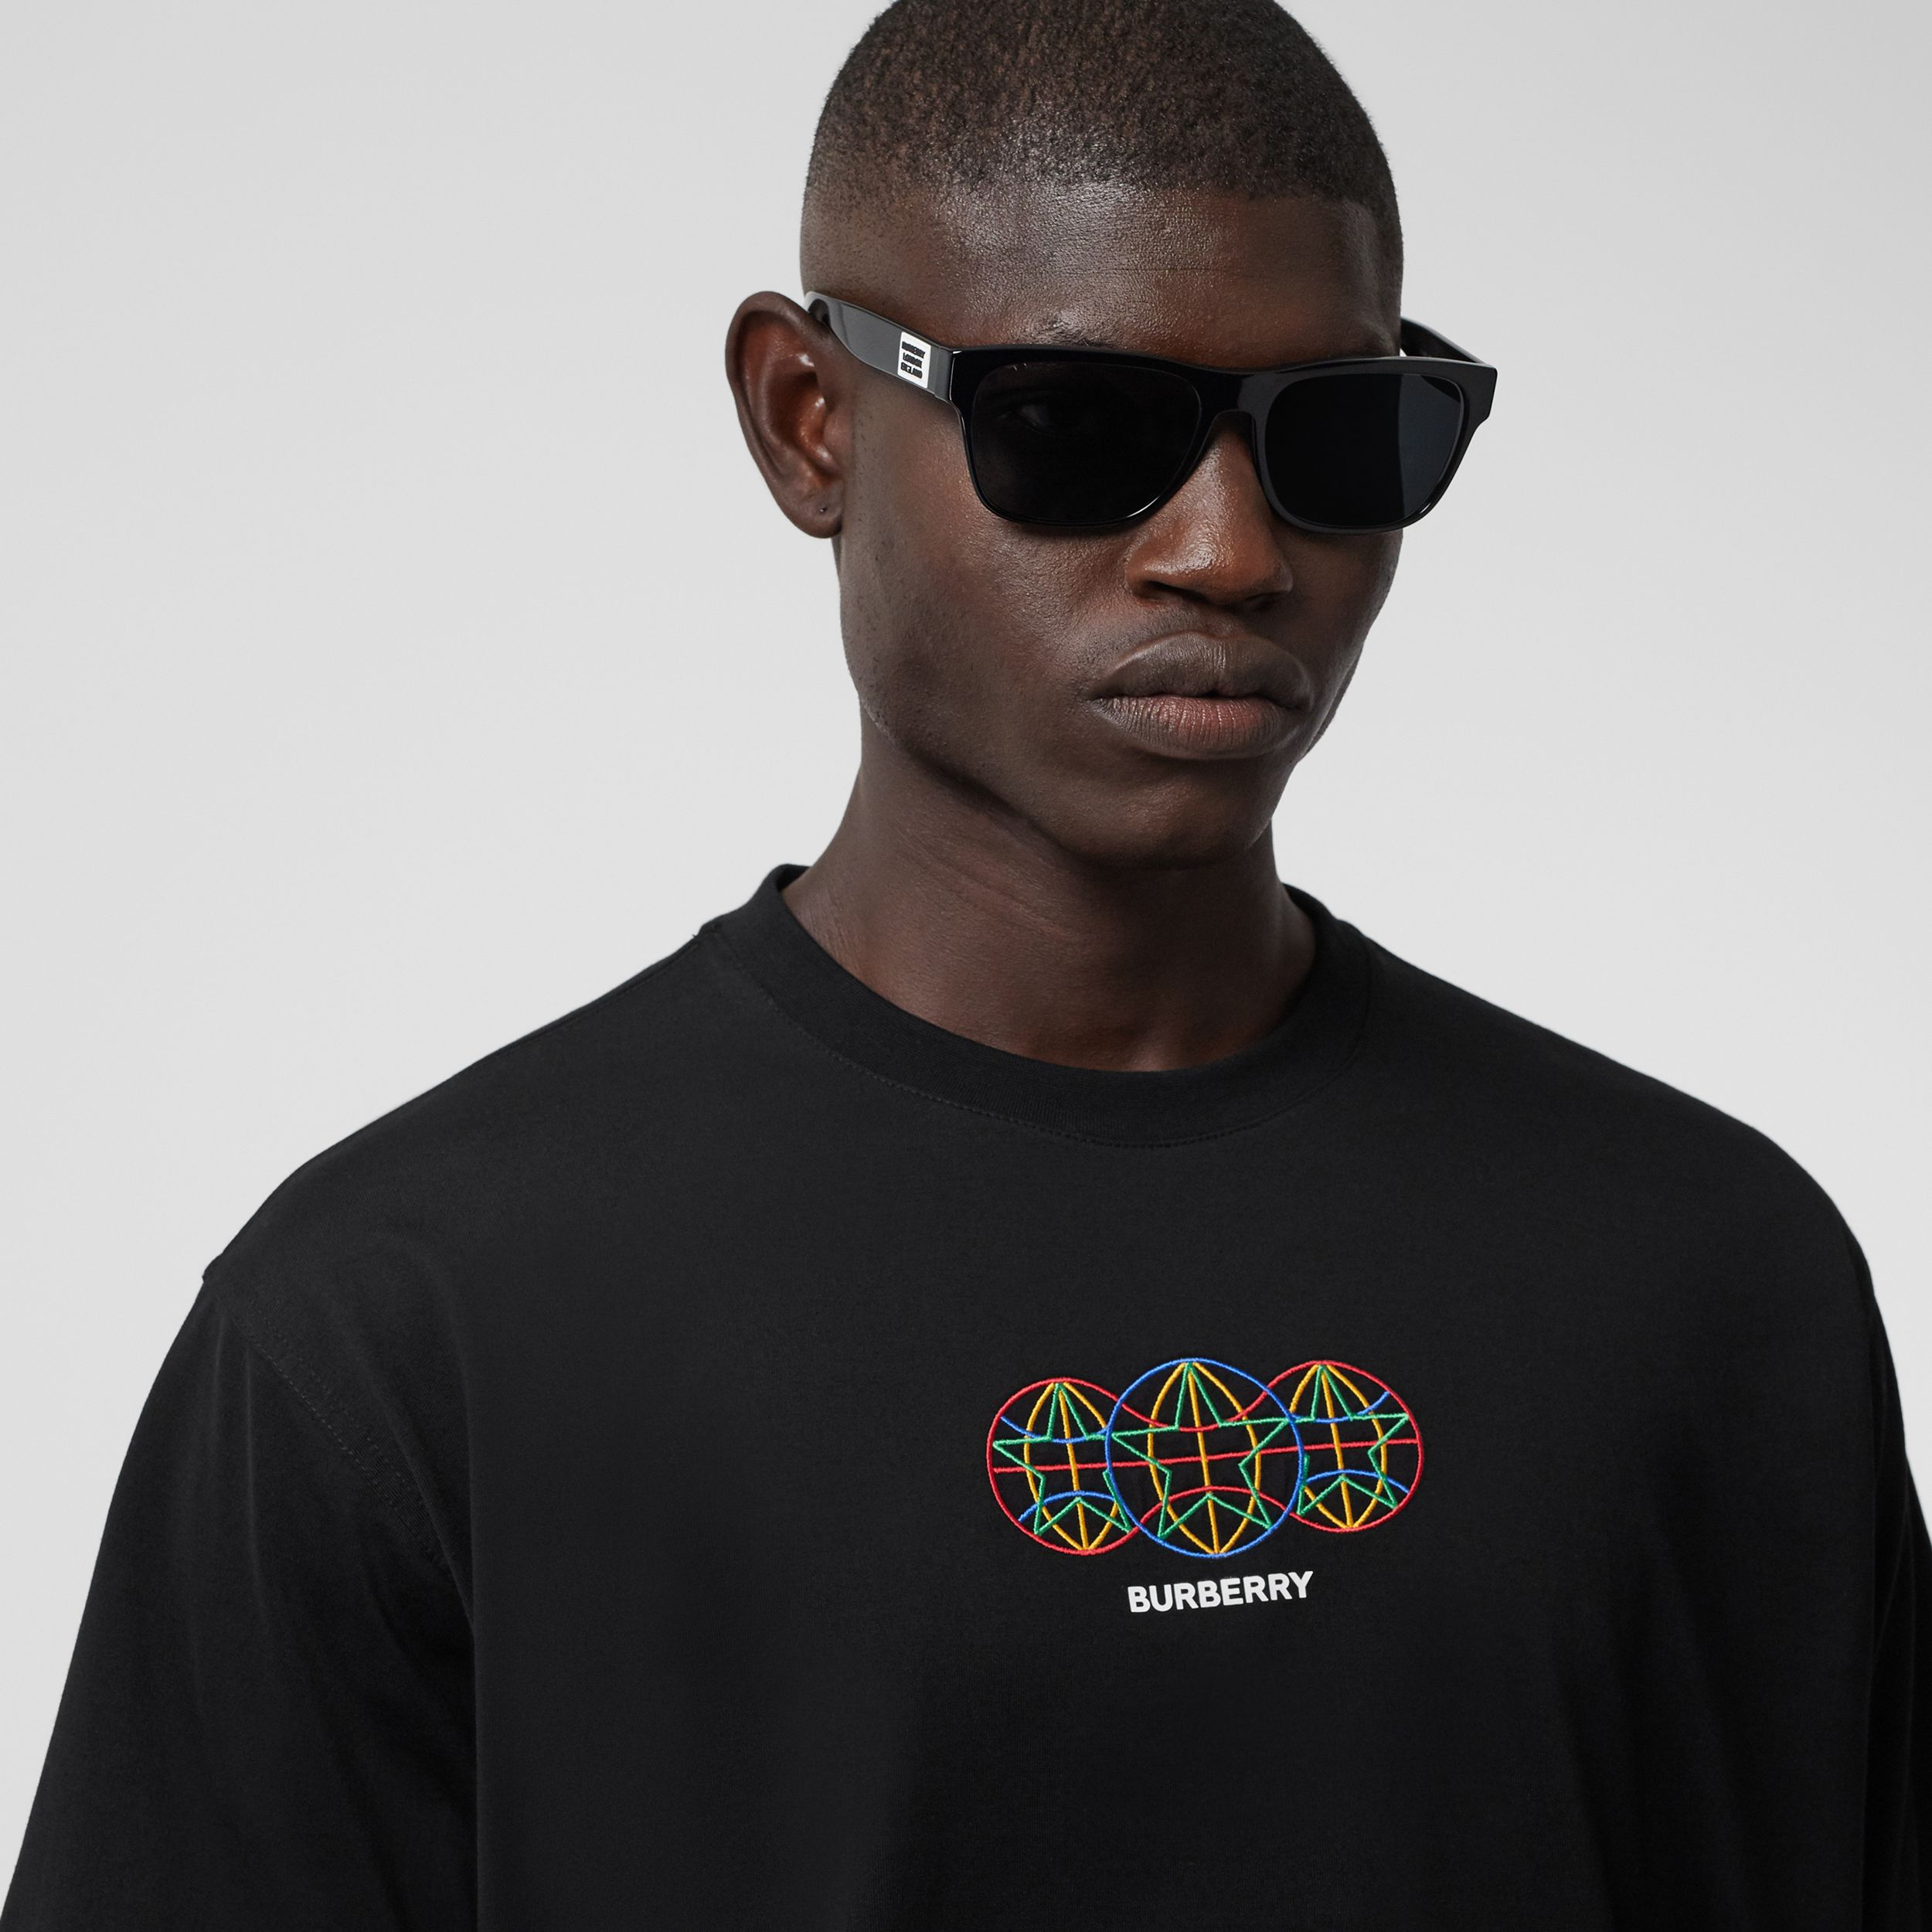 Embroidered Globe Graphic Cotton Oversized T-shirt in Black - Men | Burberry Australia - 2